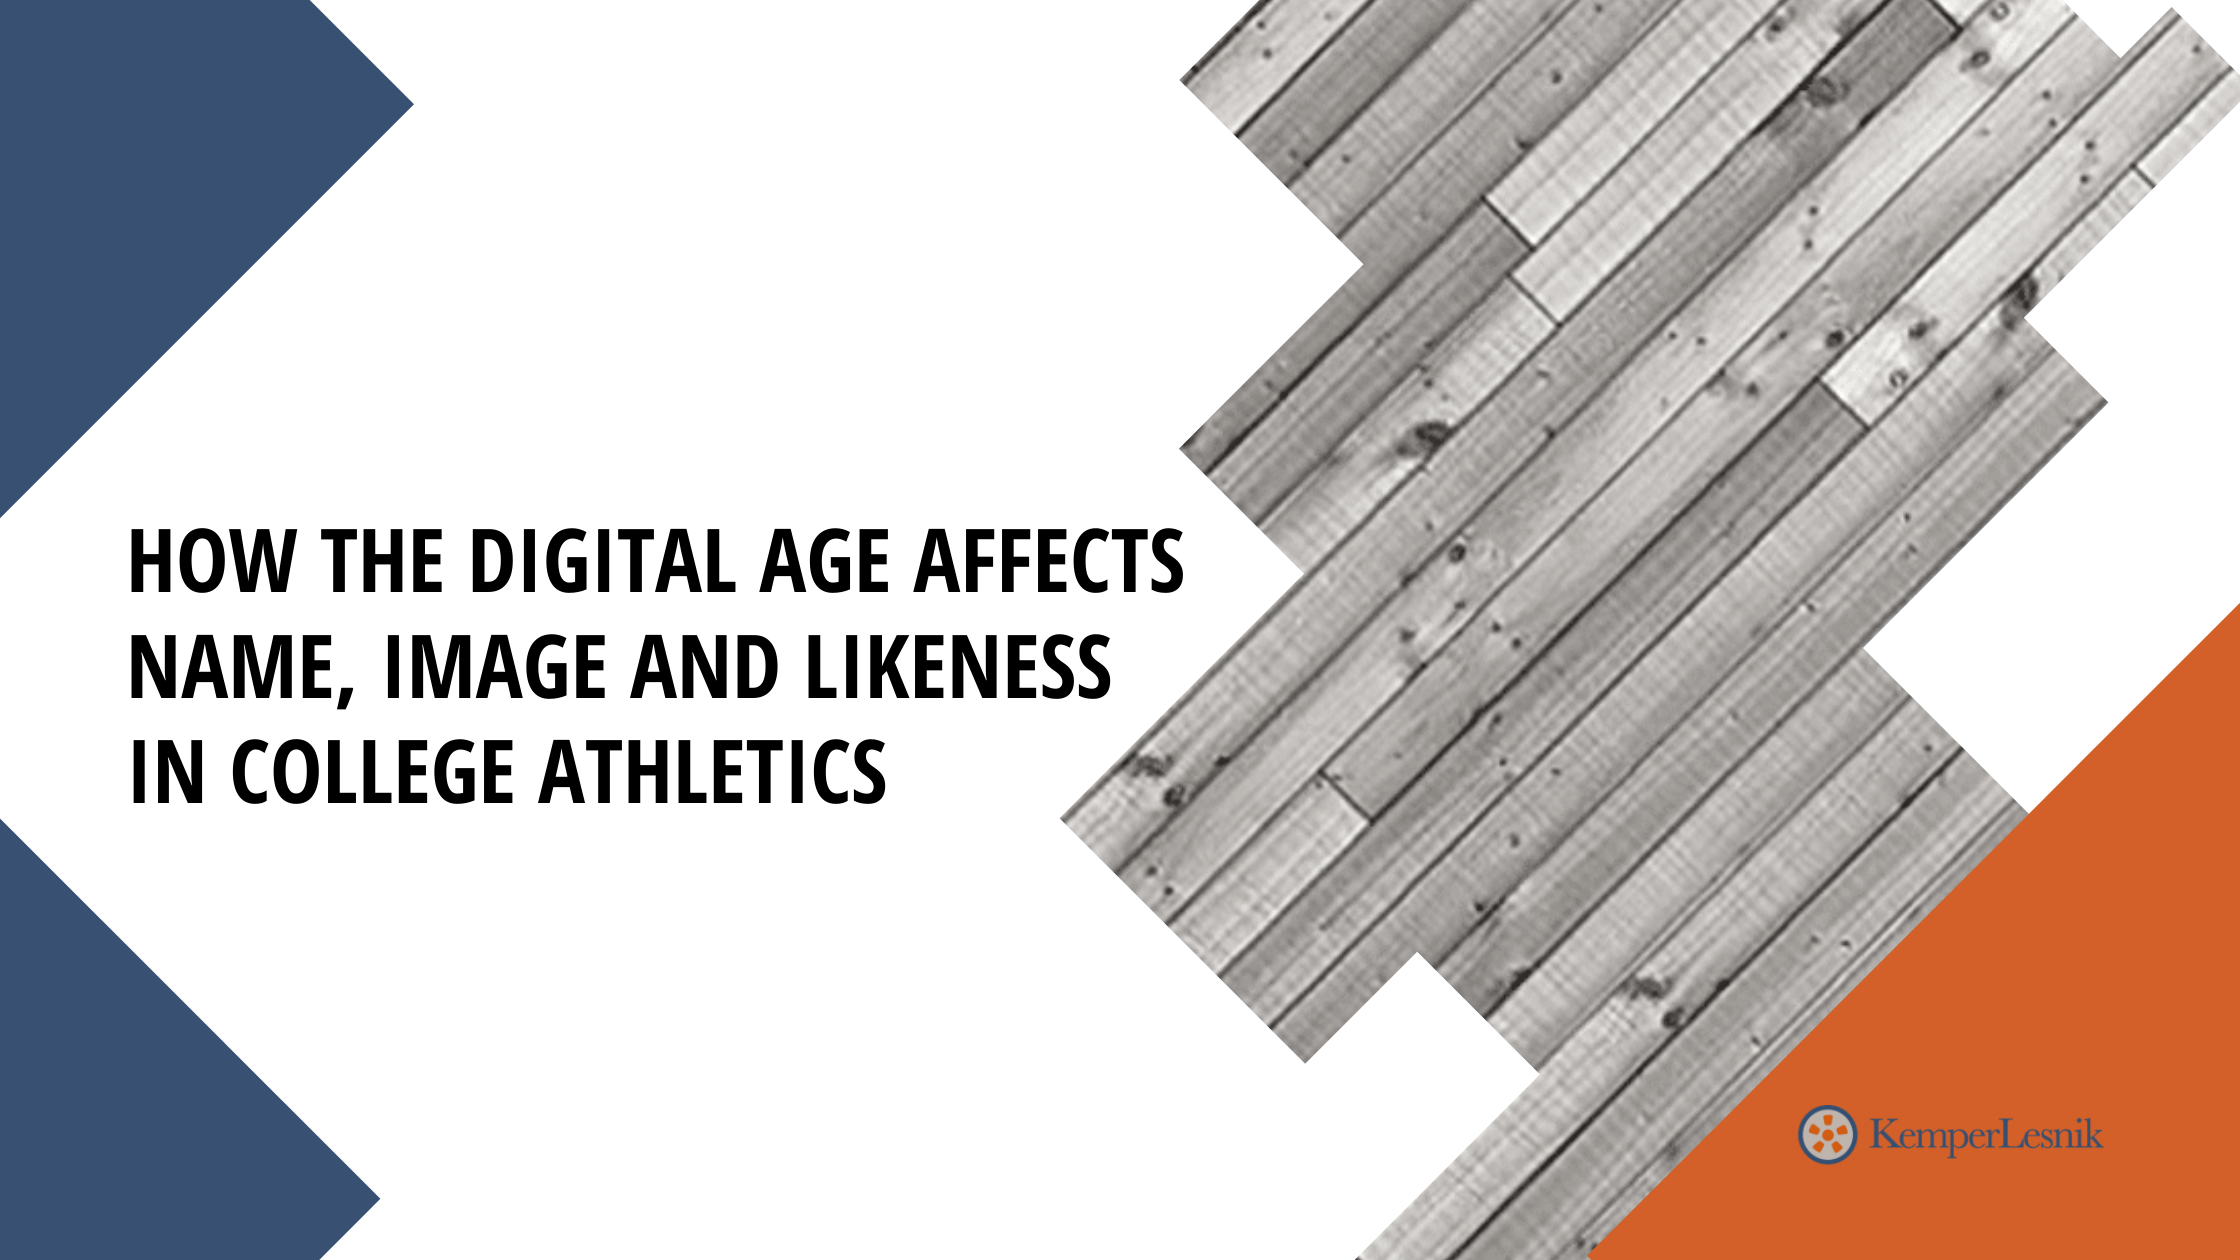 How the Digital Age Affects Name, Image and Likeness in College Athletics